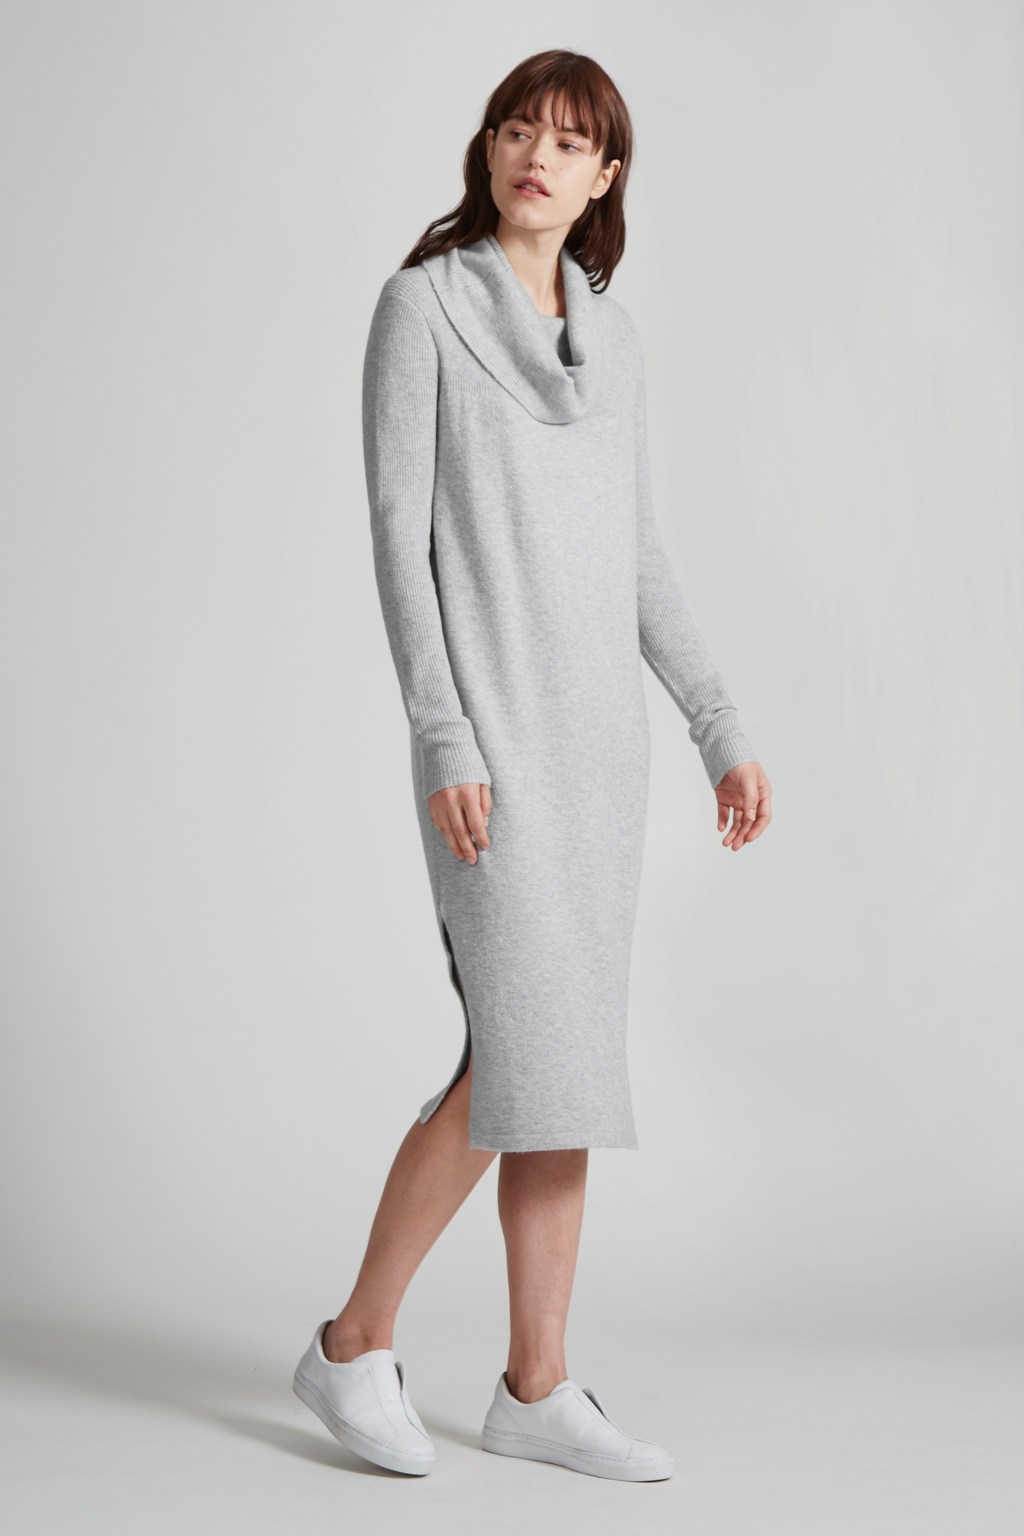 new authentic on feet images of how to orders Otto Knit Midi Dress